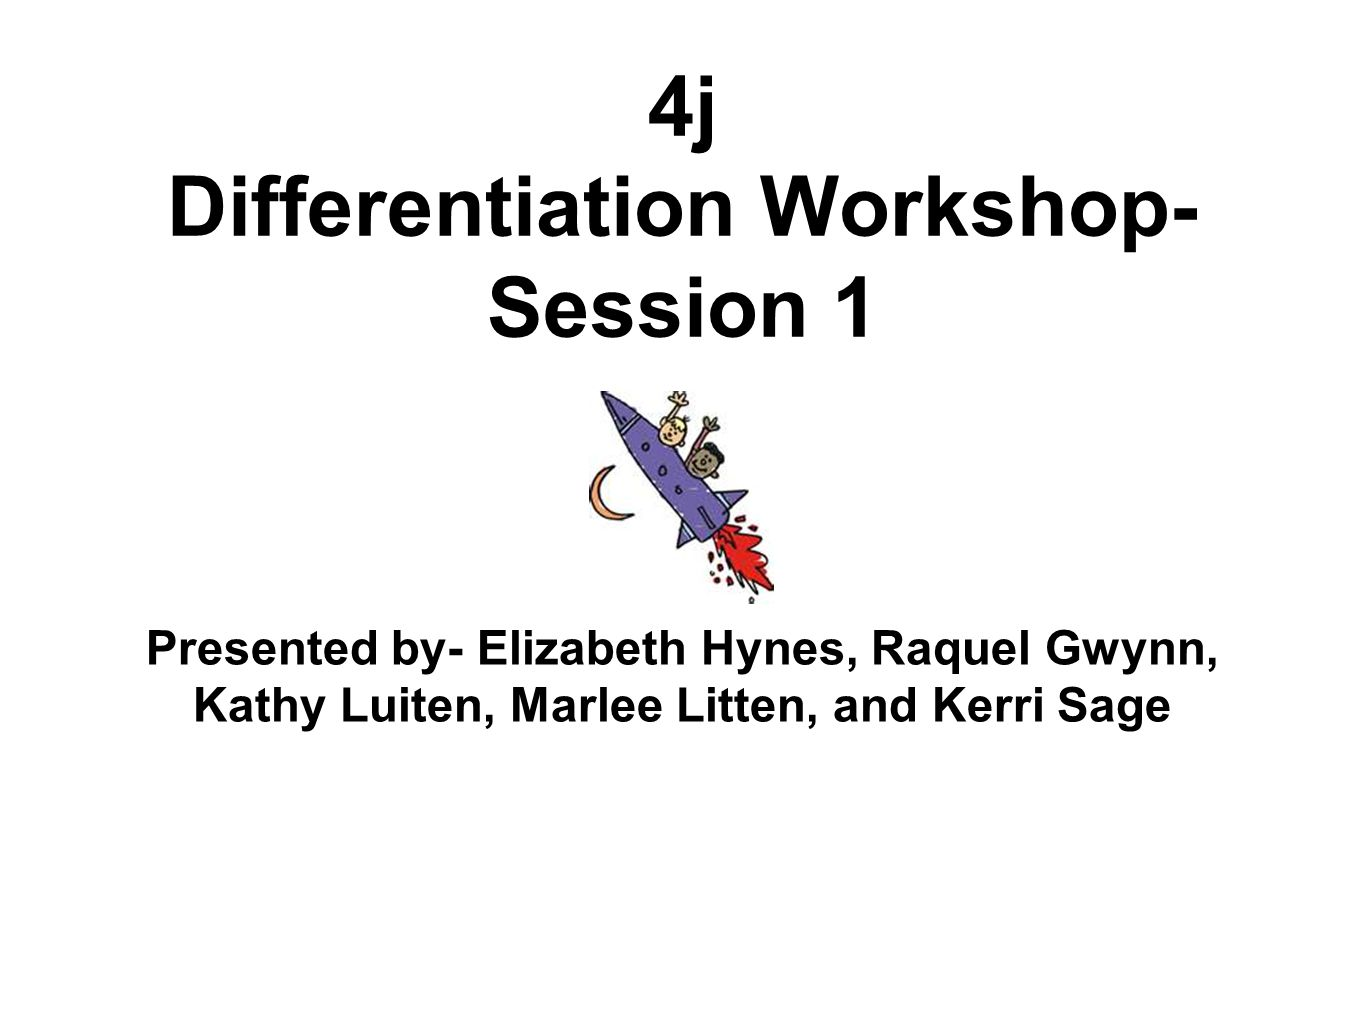 4j Differentiation Workshop- Session 1 Presented by- Elizabeth Hynes, Raquel Gwynn, Kathy Luiten, Marlee Litten, and Kerri Sage